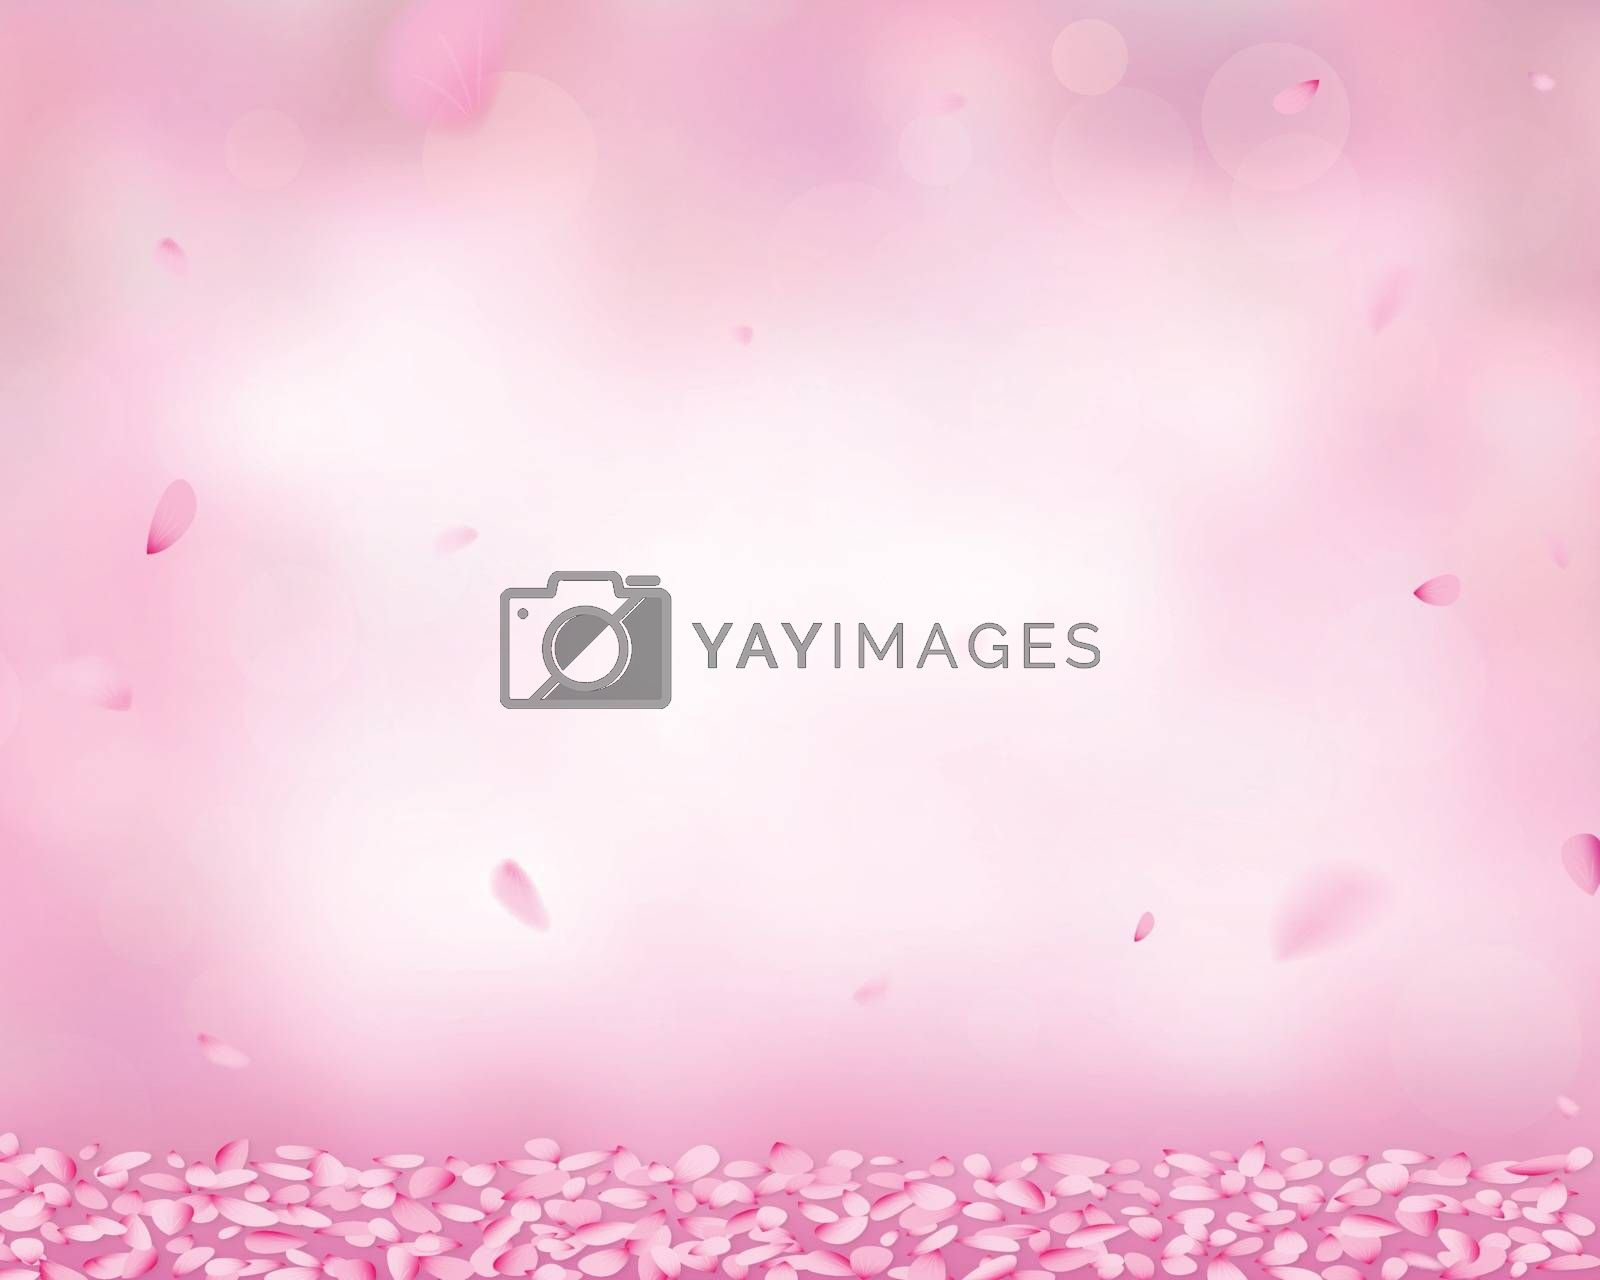 Pink spa and cosmetology design concept. Falling petals on the ground, in the background bokeh and color gradient effect.